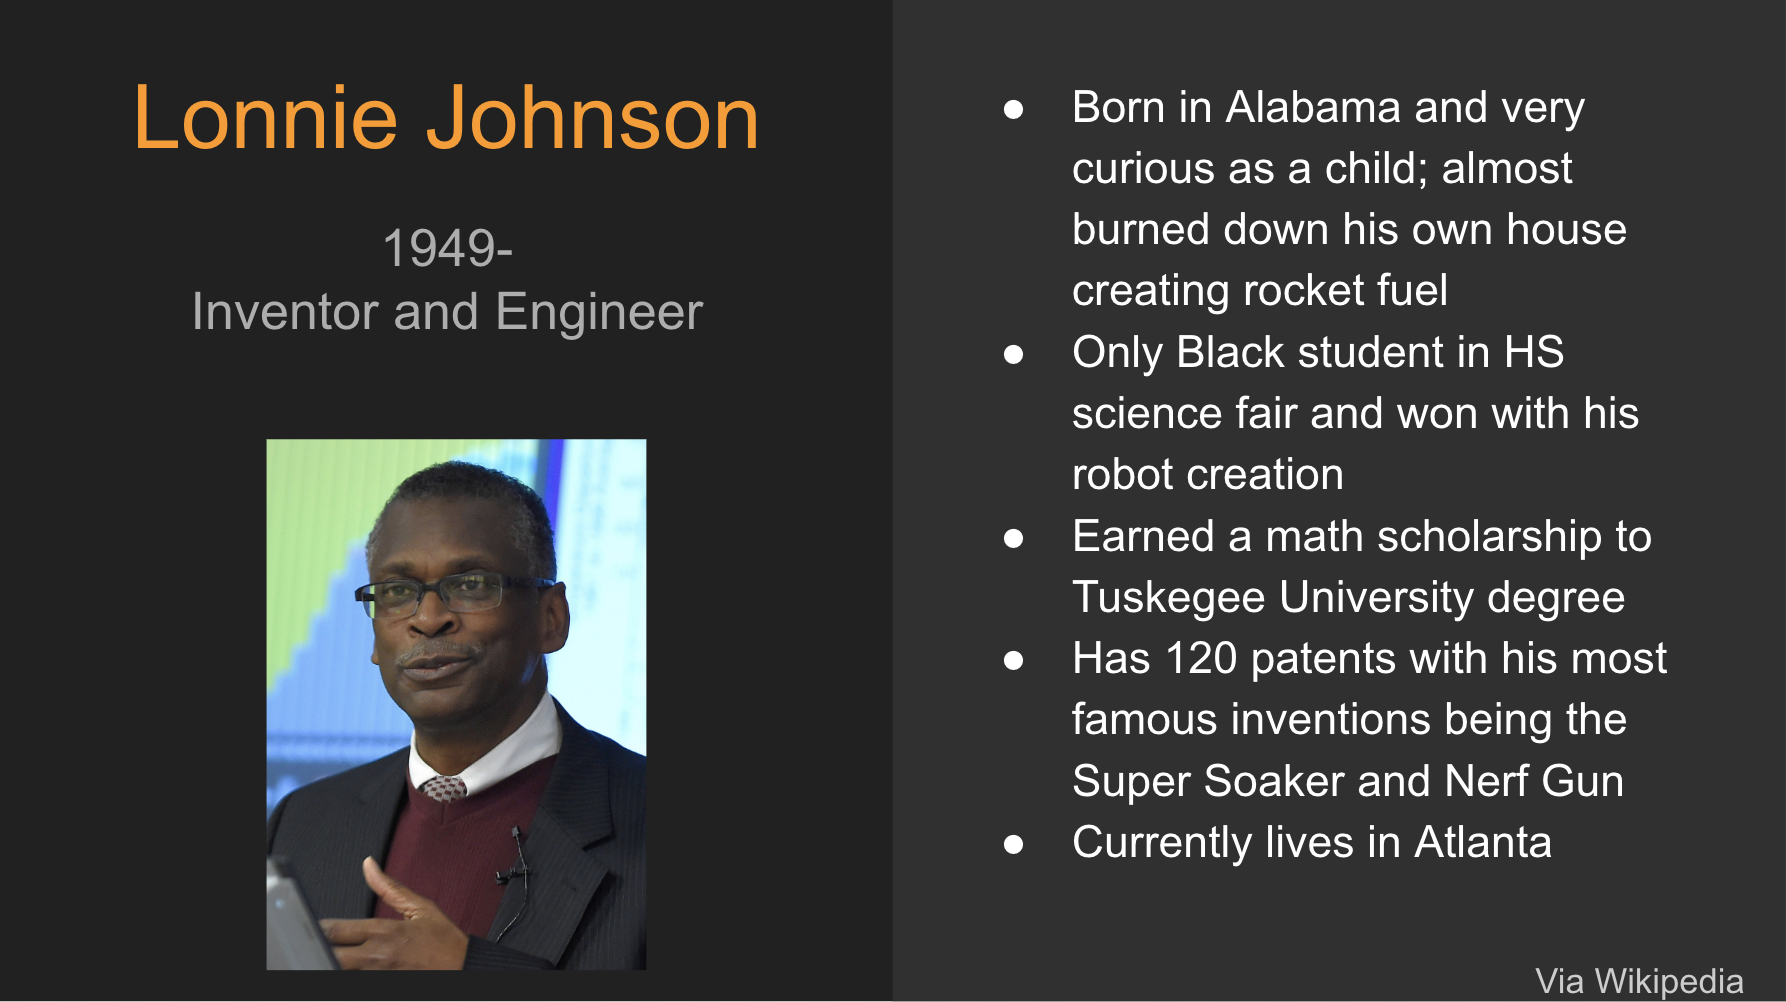 Lonnie Johnson Information